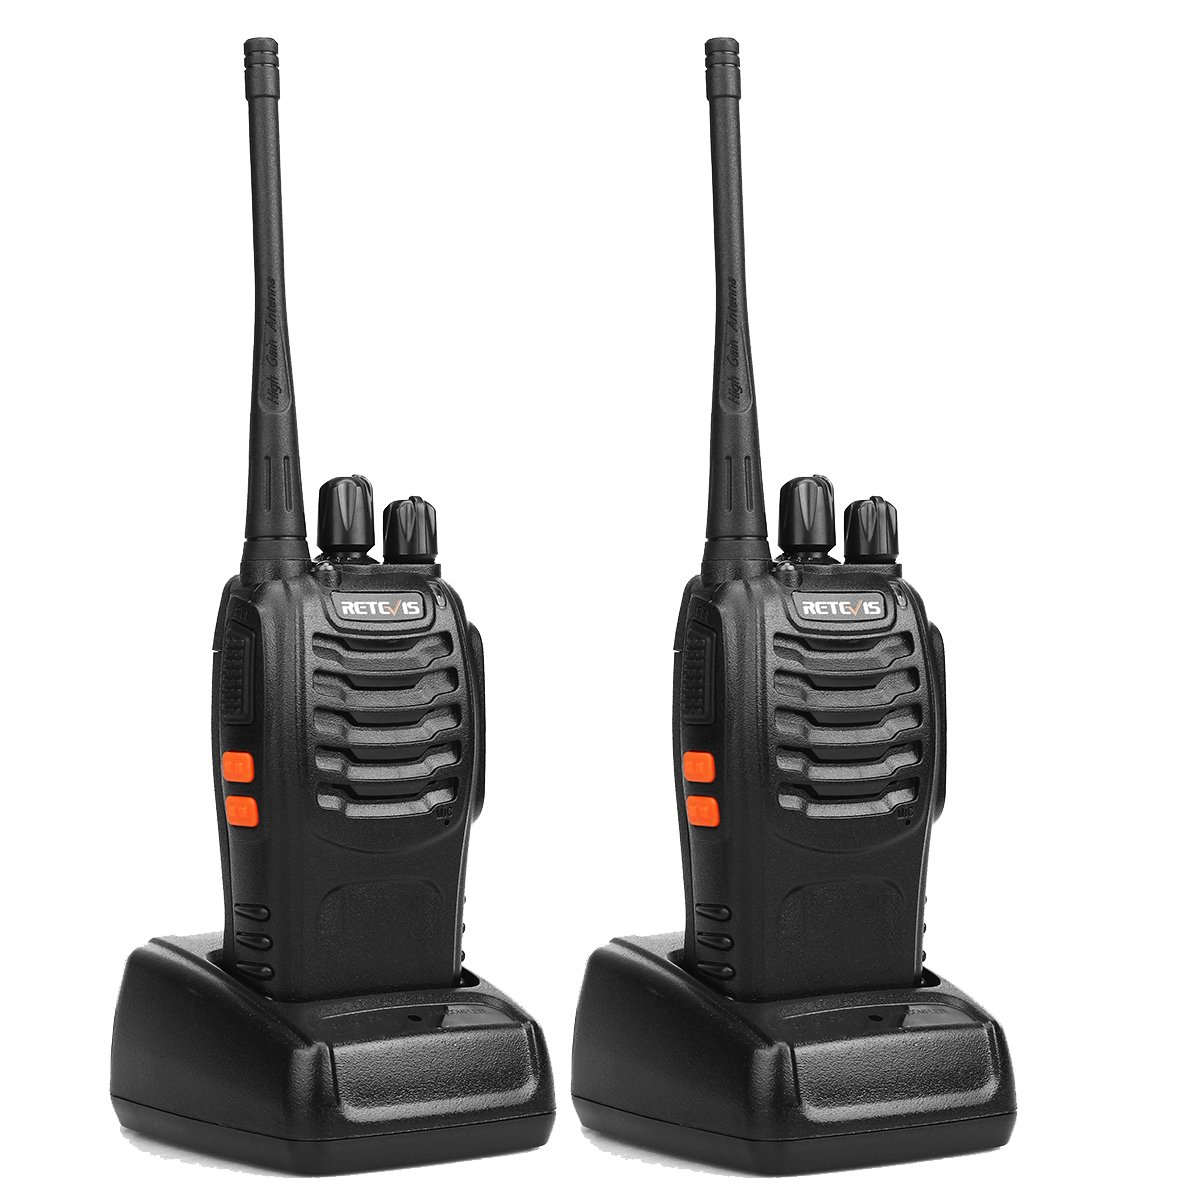 Retevis H-777 Two Way Radio UHF 400-470MHz 16CH Single Band Flashlight Portable Walkie Talkies (1 Pair)